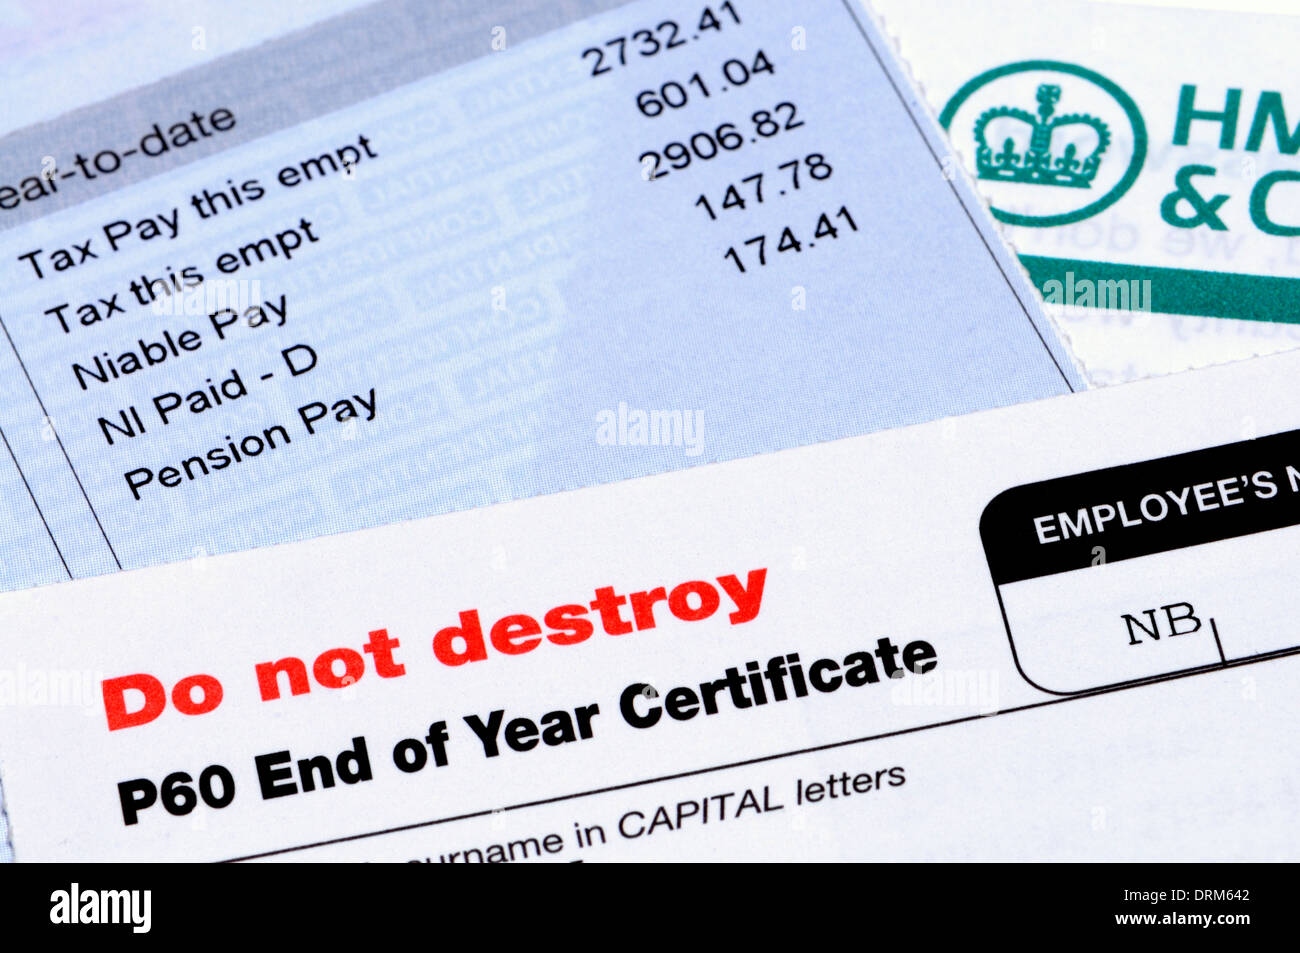 HMRC tax documents - P60 end of year certificate and pay slip - Stock Image